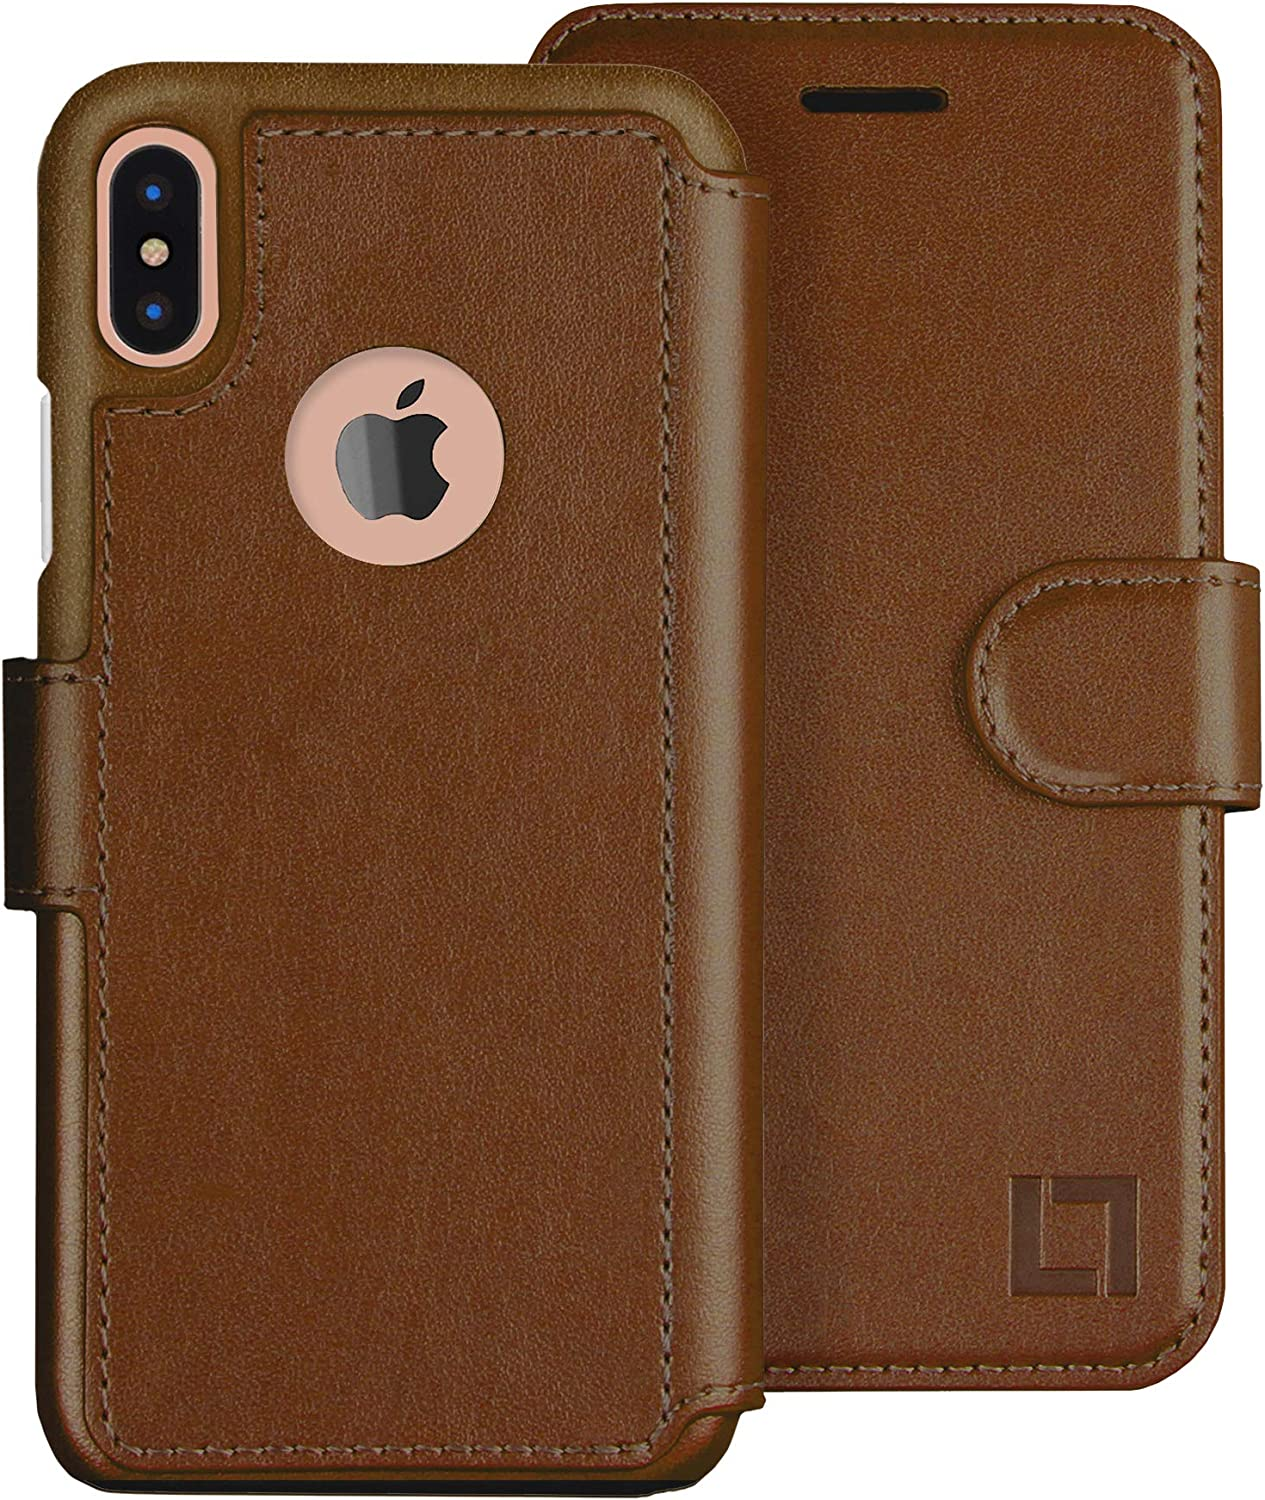 LUPA iPhone X Case with Card Holder -Slim & Lightweight iPhone X Wallet Case - for Women & Men - Faux Leather - iPhone Xs Cases with Magnetic Closure– Light Brown (5.8 Inch Diagonal Screen Size)